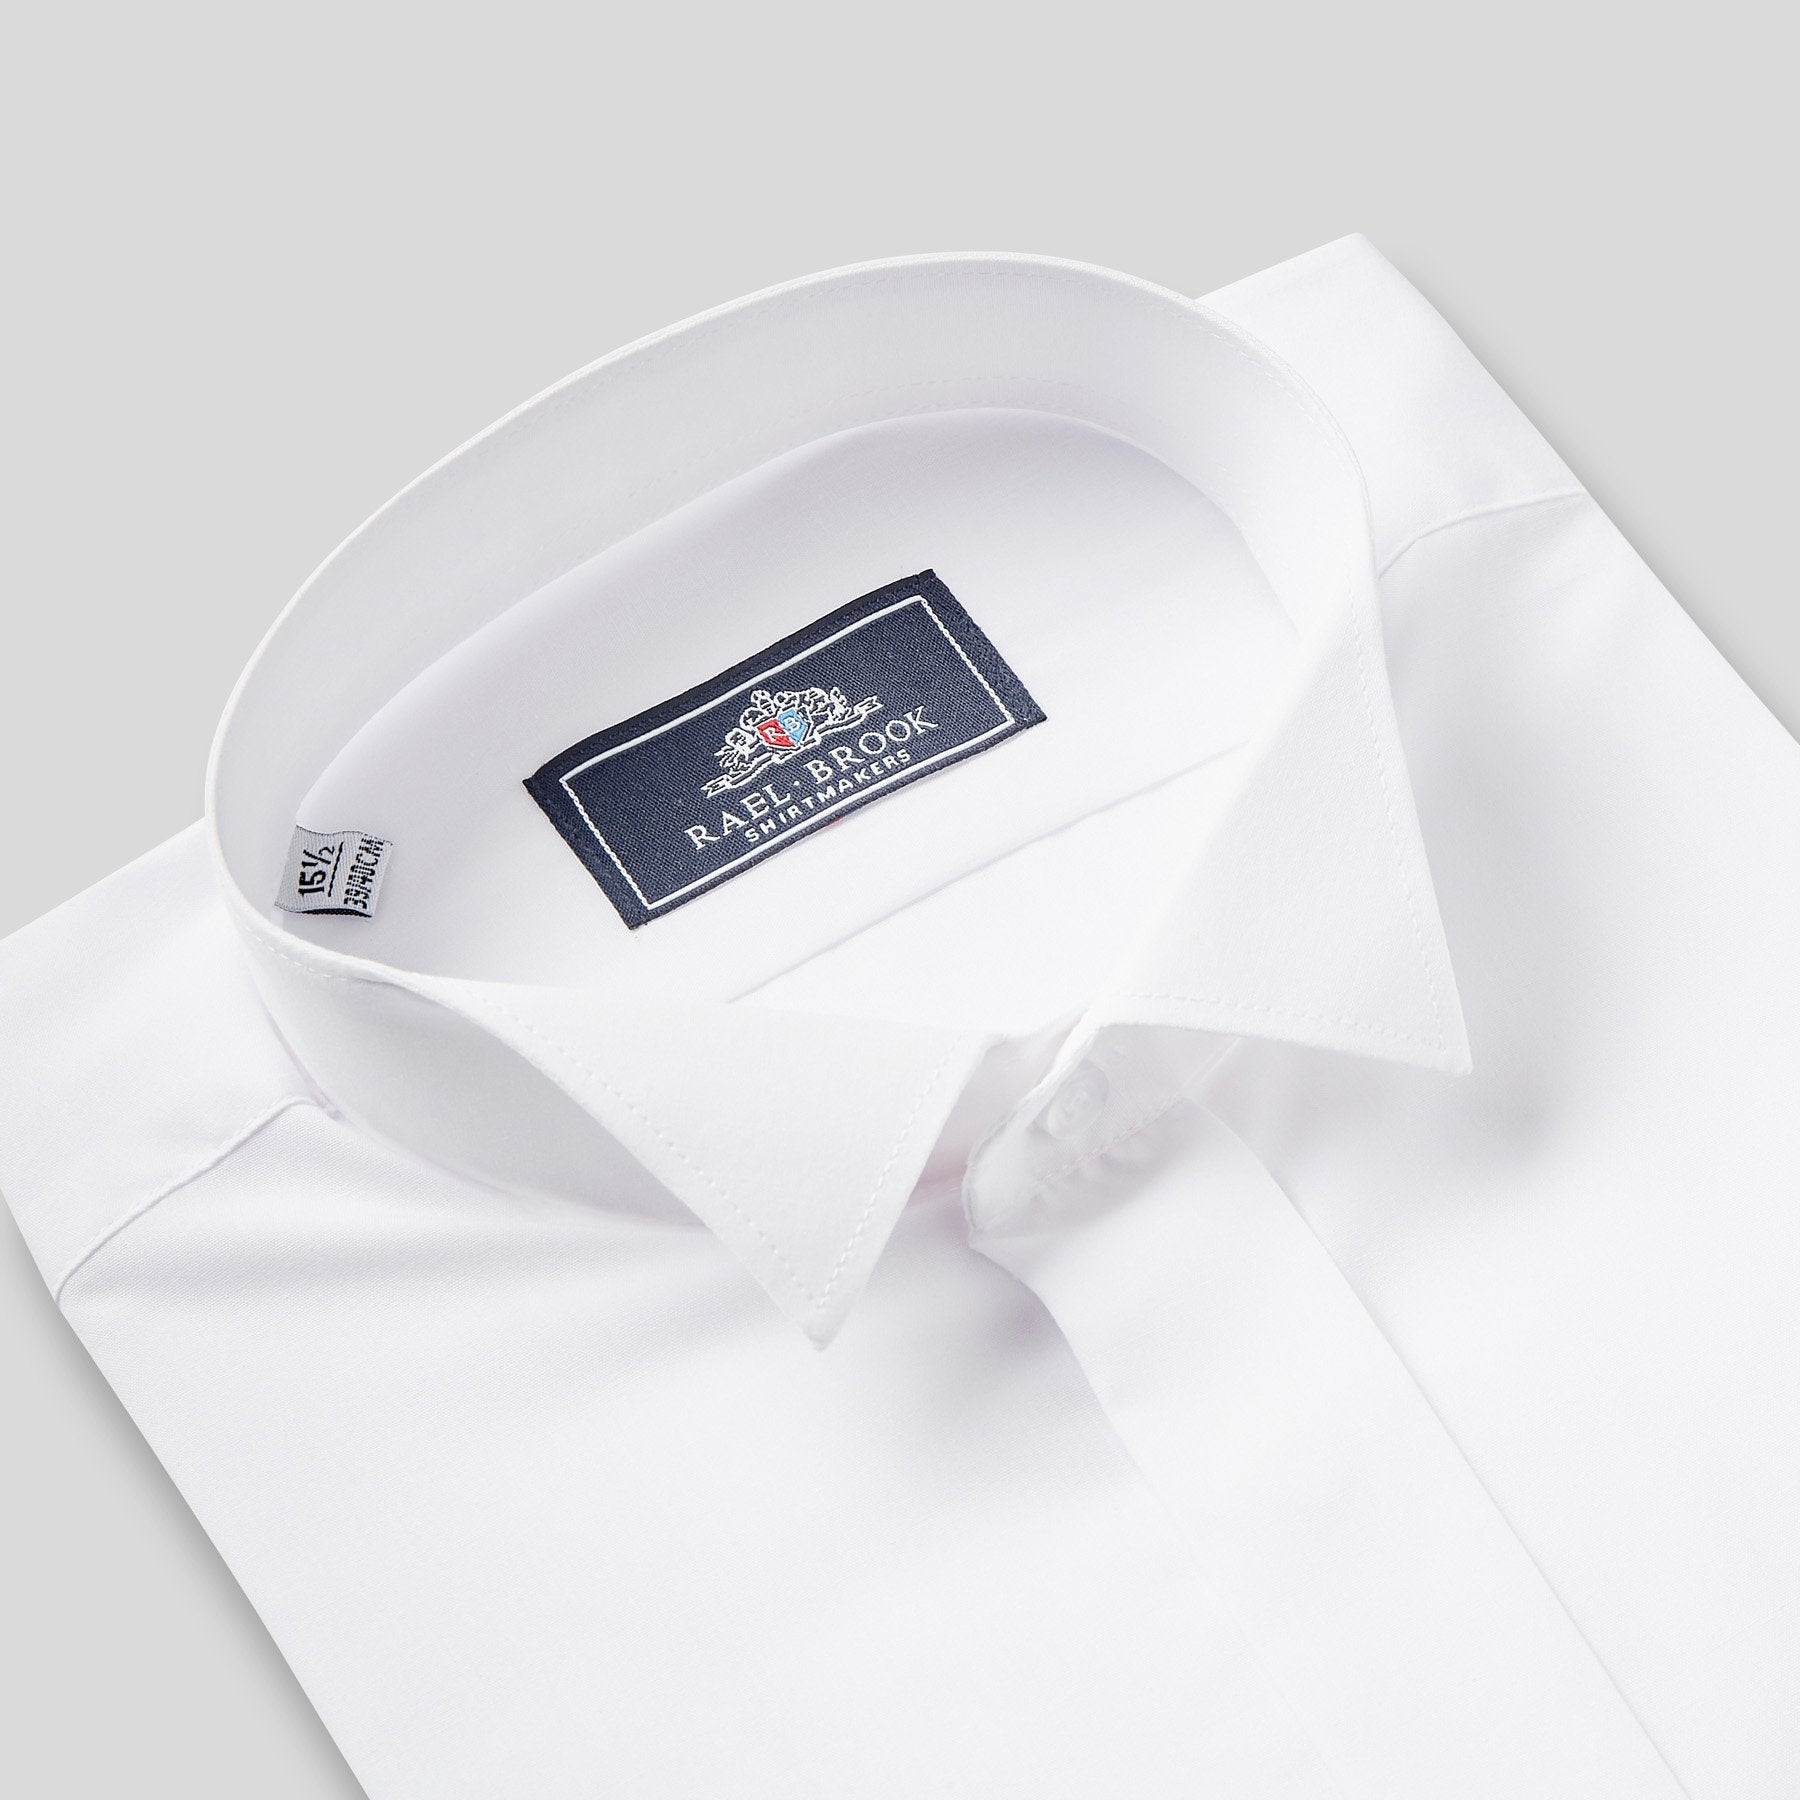 Rael Brook Tailored Fit White Wing Collar Dress Shirt Collar